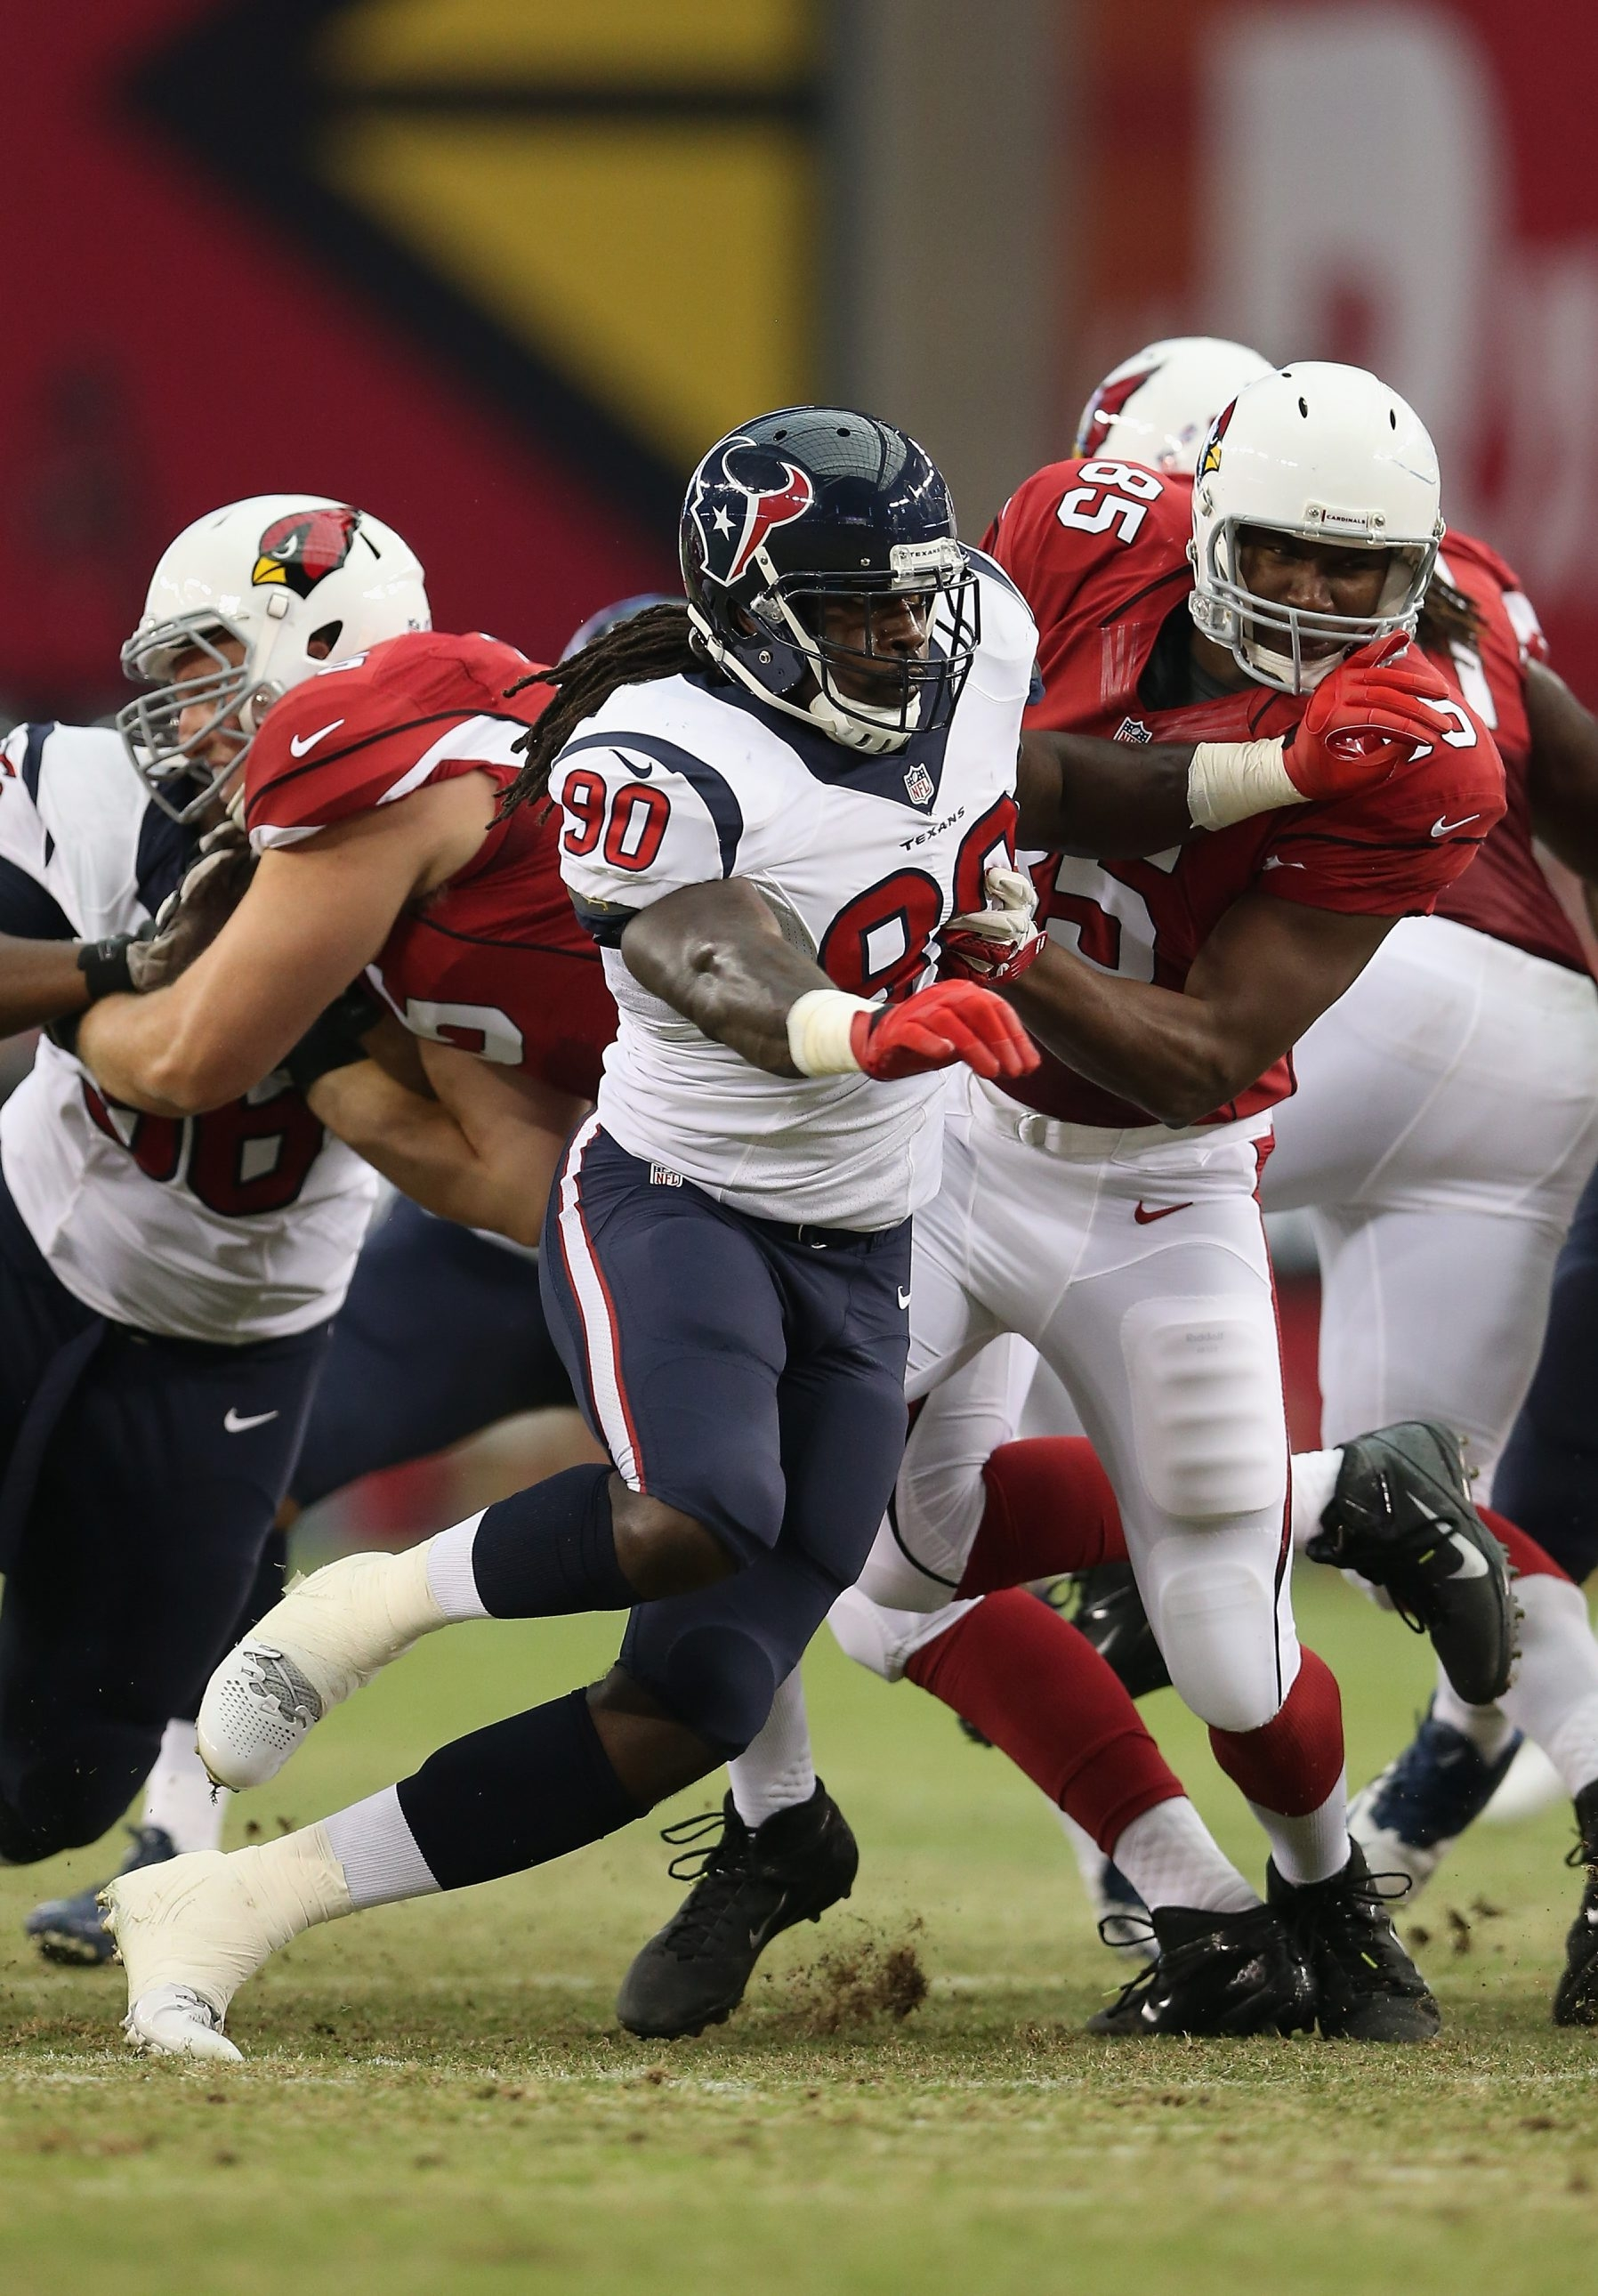 The Houston Texans are banking on Jadeveon Clowney playing in the season opener.